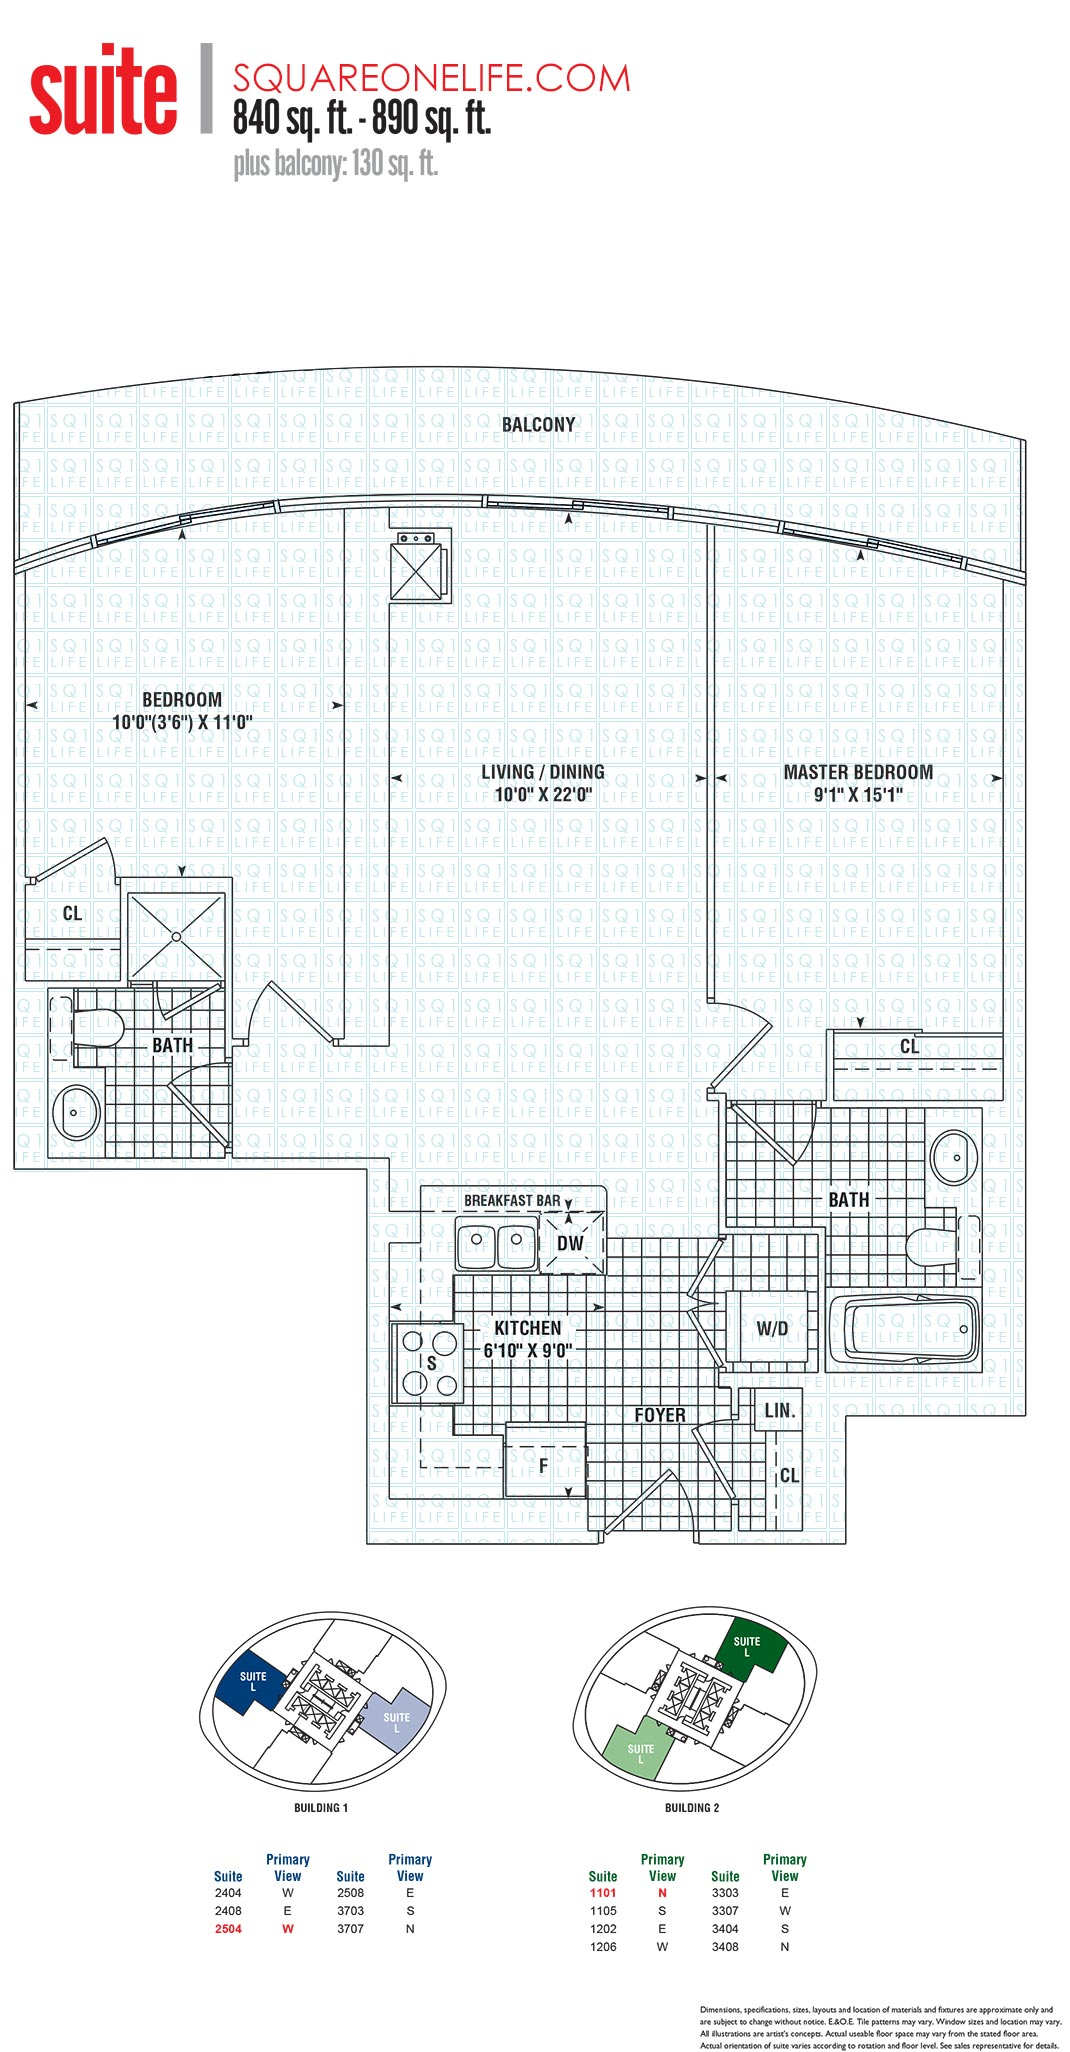 50-Absolute-60-Absolute-Condos-Floorplan-Suite-L-2-Bed-2-Bath marilyn monroe condos Marilyn Monroe Condos 50 Absolute 60 Absolute Condos Floorplan Suite L 2 Bed 2 Bath